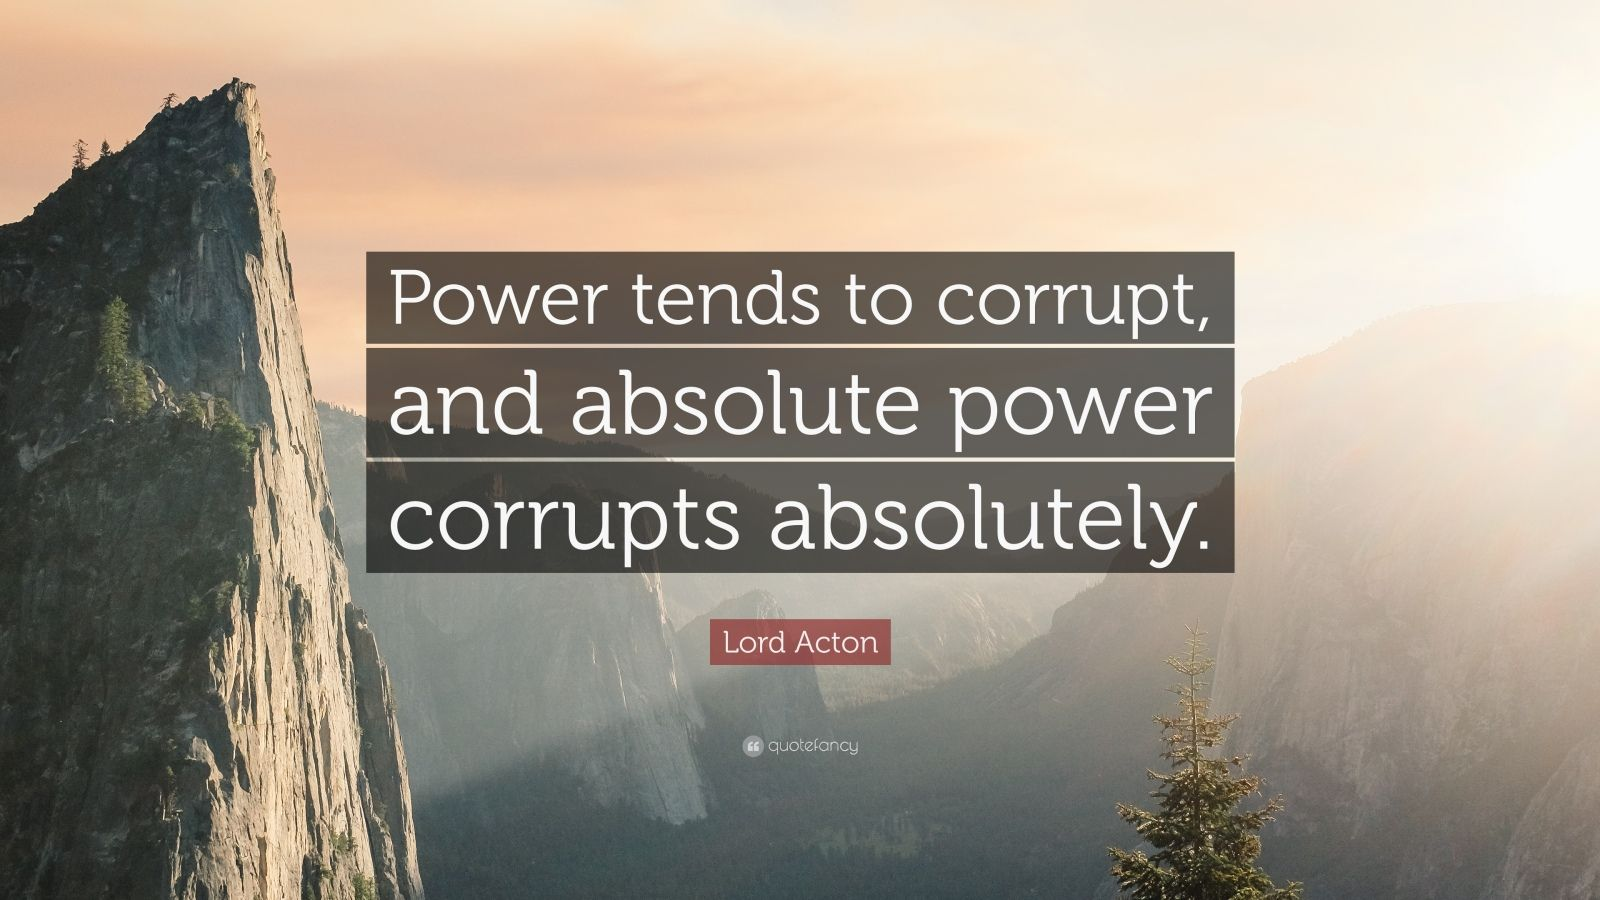 power corrupts and absolute power corrupts Absolute power corrupts absolutely absolute power corrupts absolutely because there are those who have the power and those who desire power those who have absolute power may misuse their power in a means of doing bad, while they may also use their power for doing good.